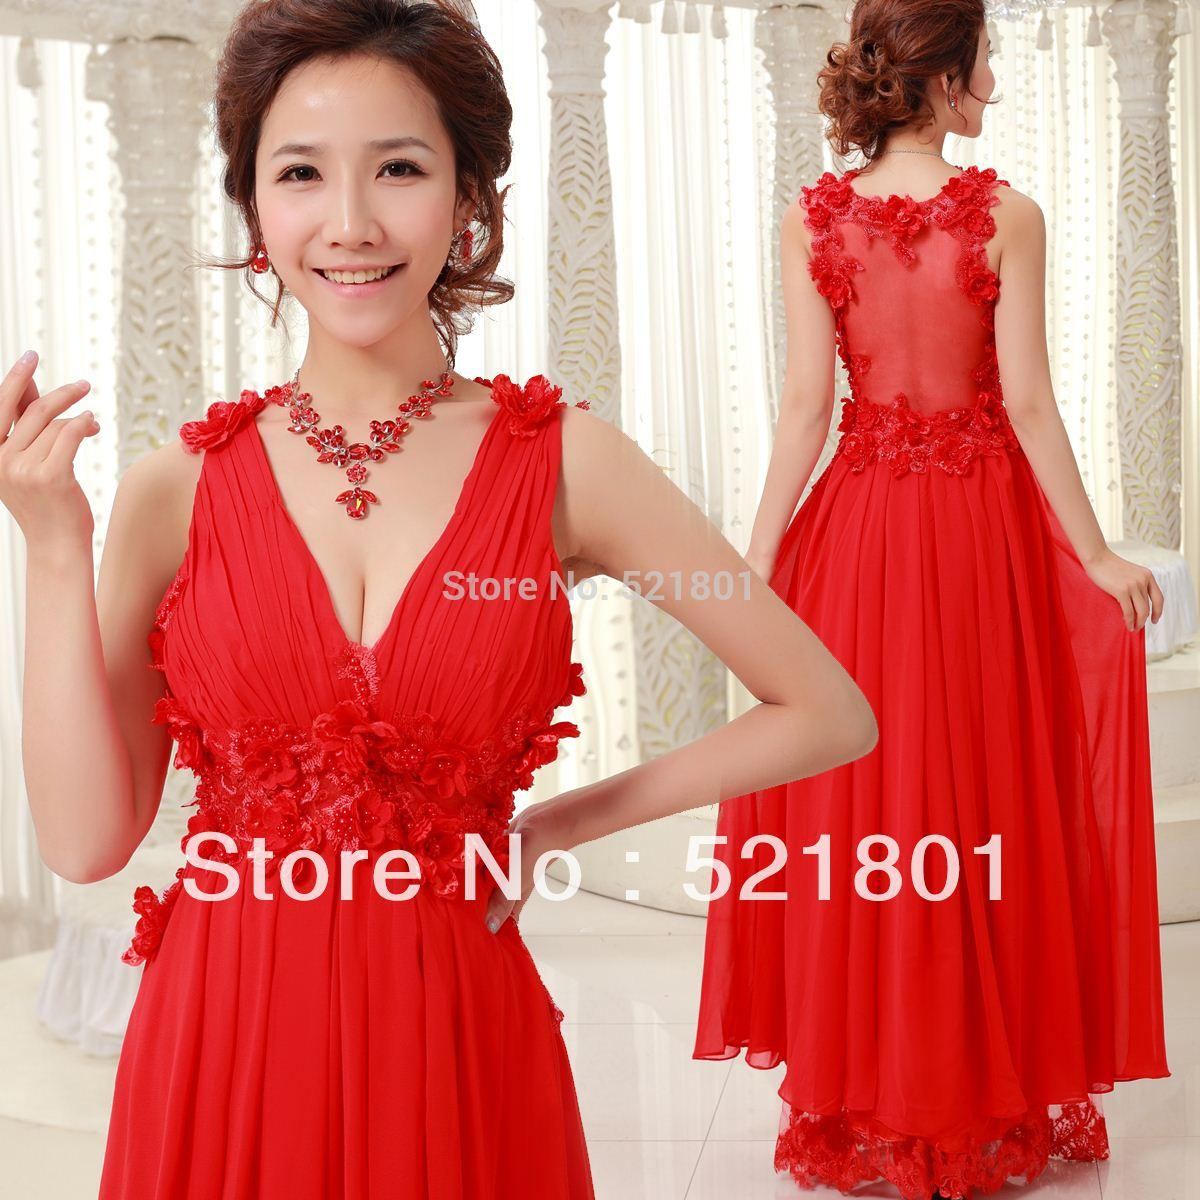 Red dresses maternity bridal evening dress evening dress evening see larger image ombrellifo Image collections